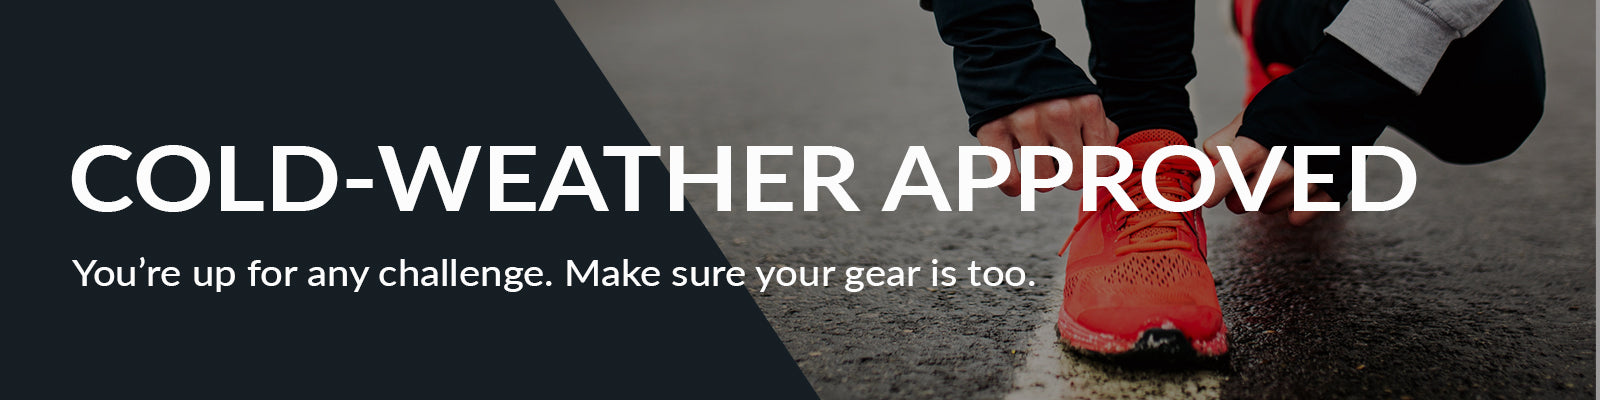 Runner tying shoe on snowy road. Text overlay stating Cold Weather Approved. You're up for any challenge. Make sure your gear is too.